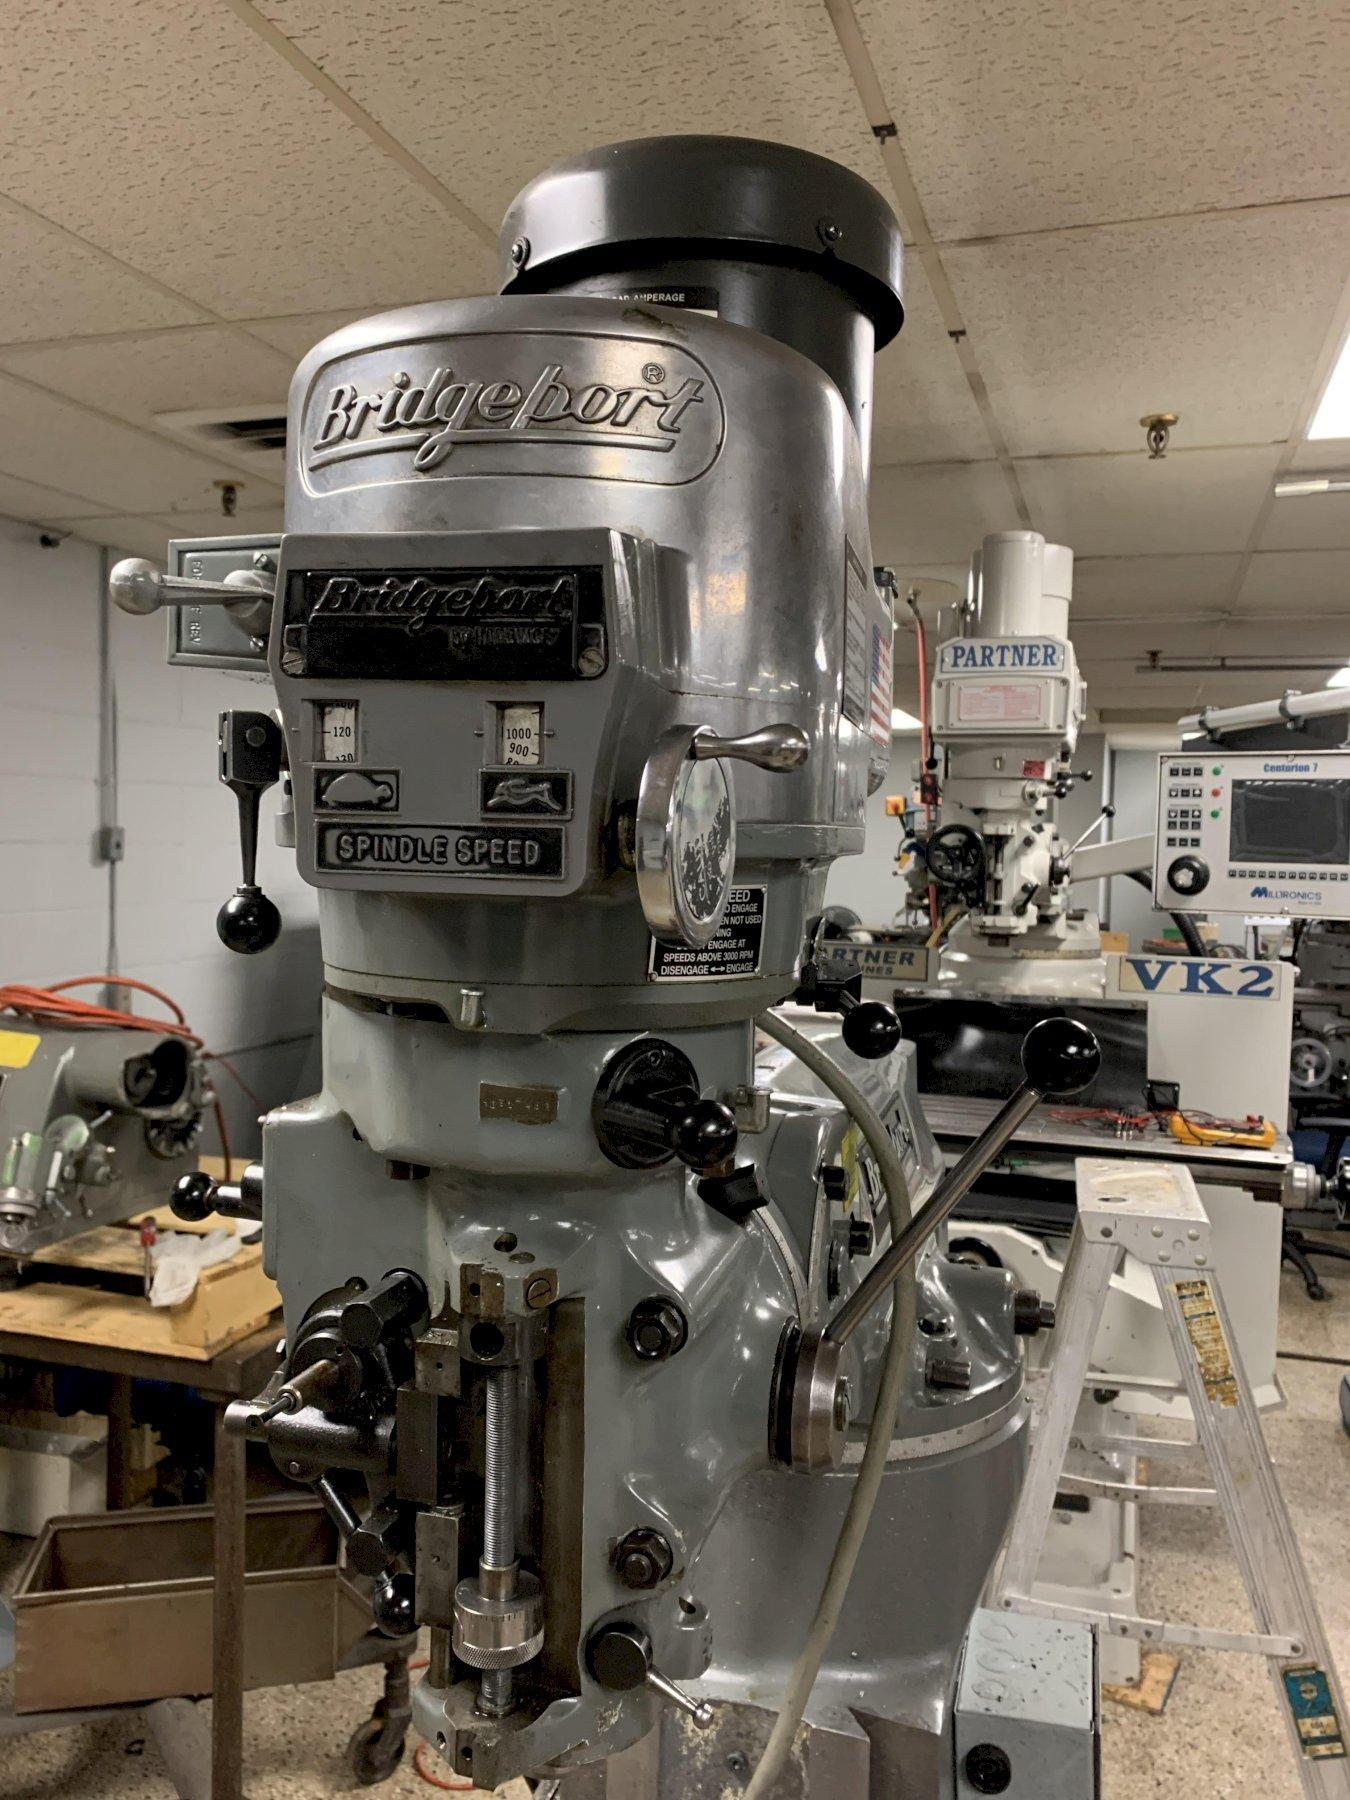 Bridgeport CNC Vertical Mill - additional details pending